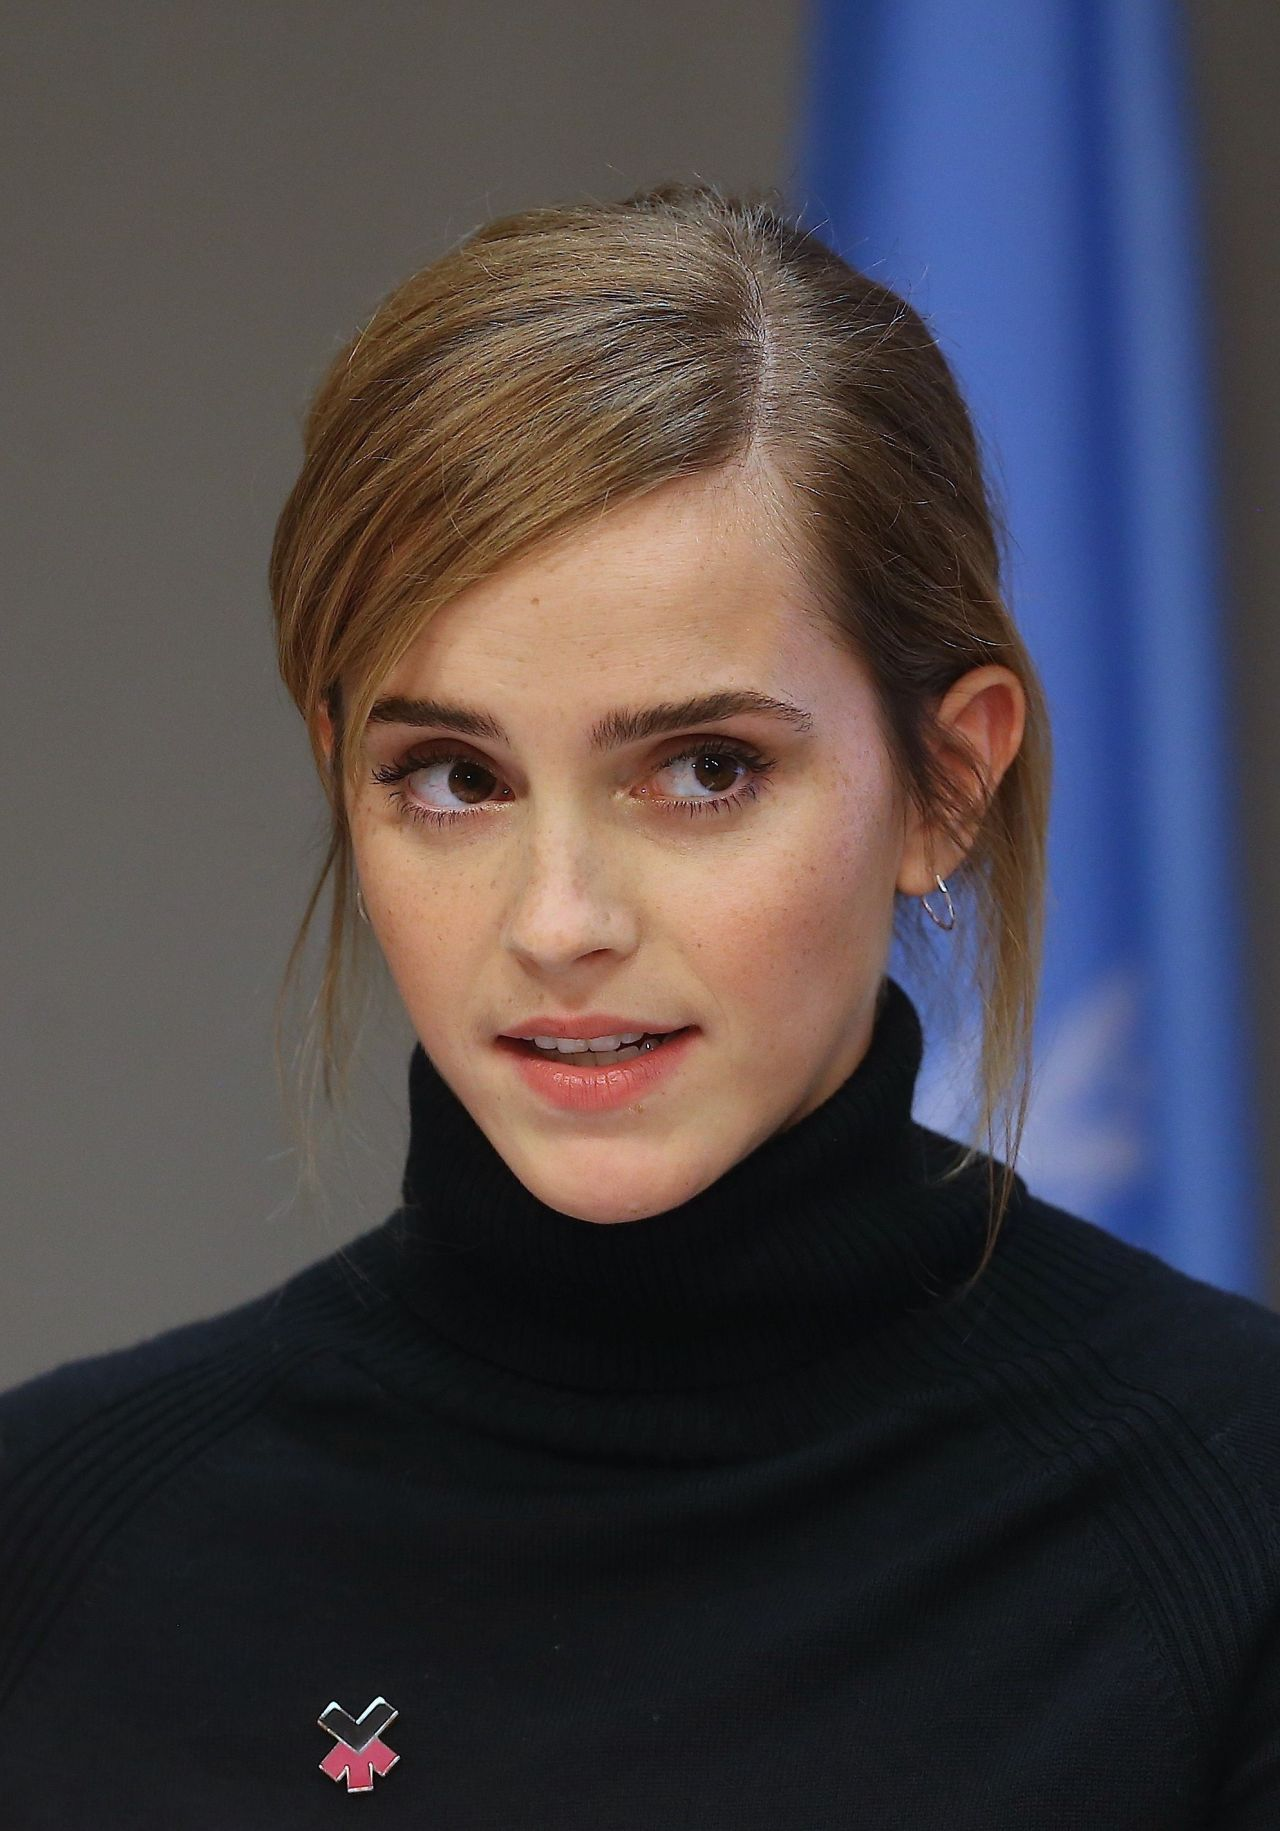 Emma Watson - Participated in the Launch of the Initiative ... Emma Watson